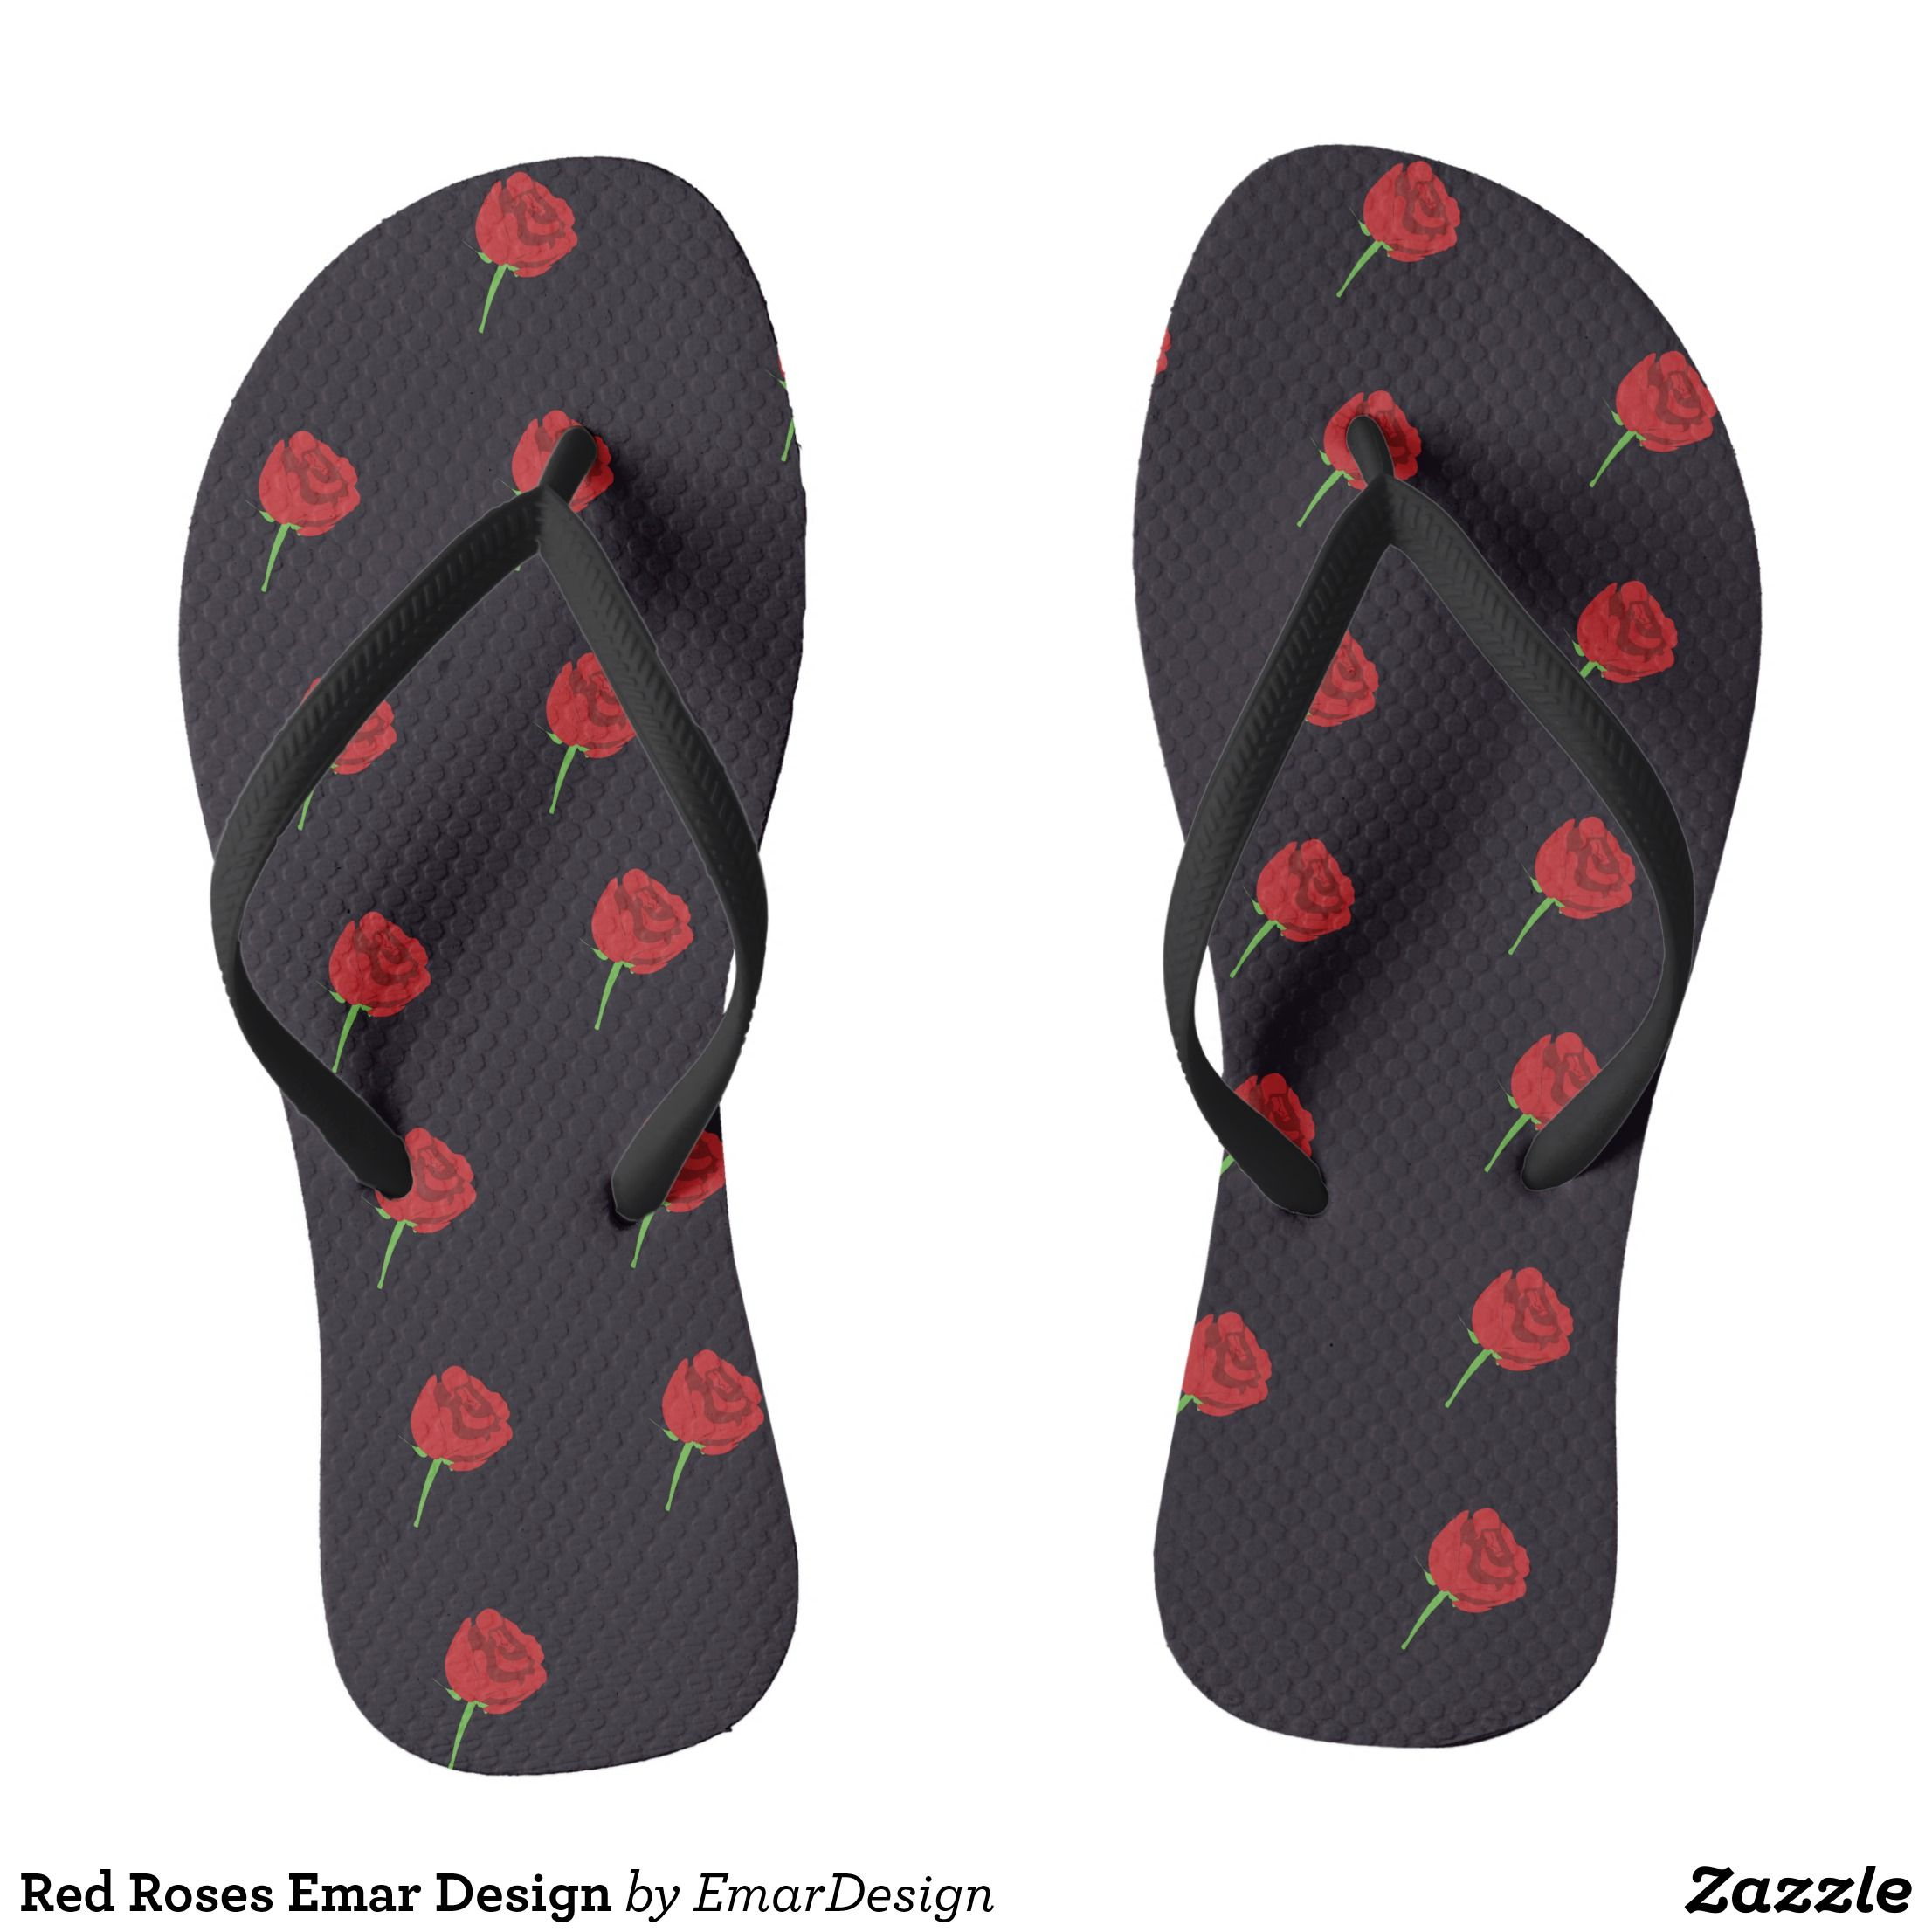 b78a28490fc67 Red Roses Emar Design Flip Flops - Canvas-Top Rubber-Sole Athletic Shoes By  Talented Fashion And Graphic Designers -  shoes  sneakers  footwear   mensfashion ...